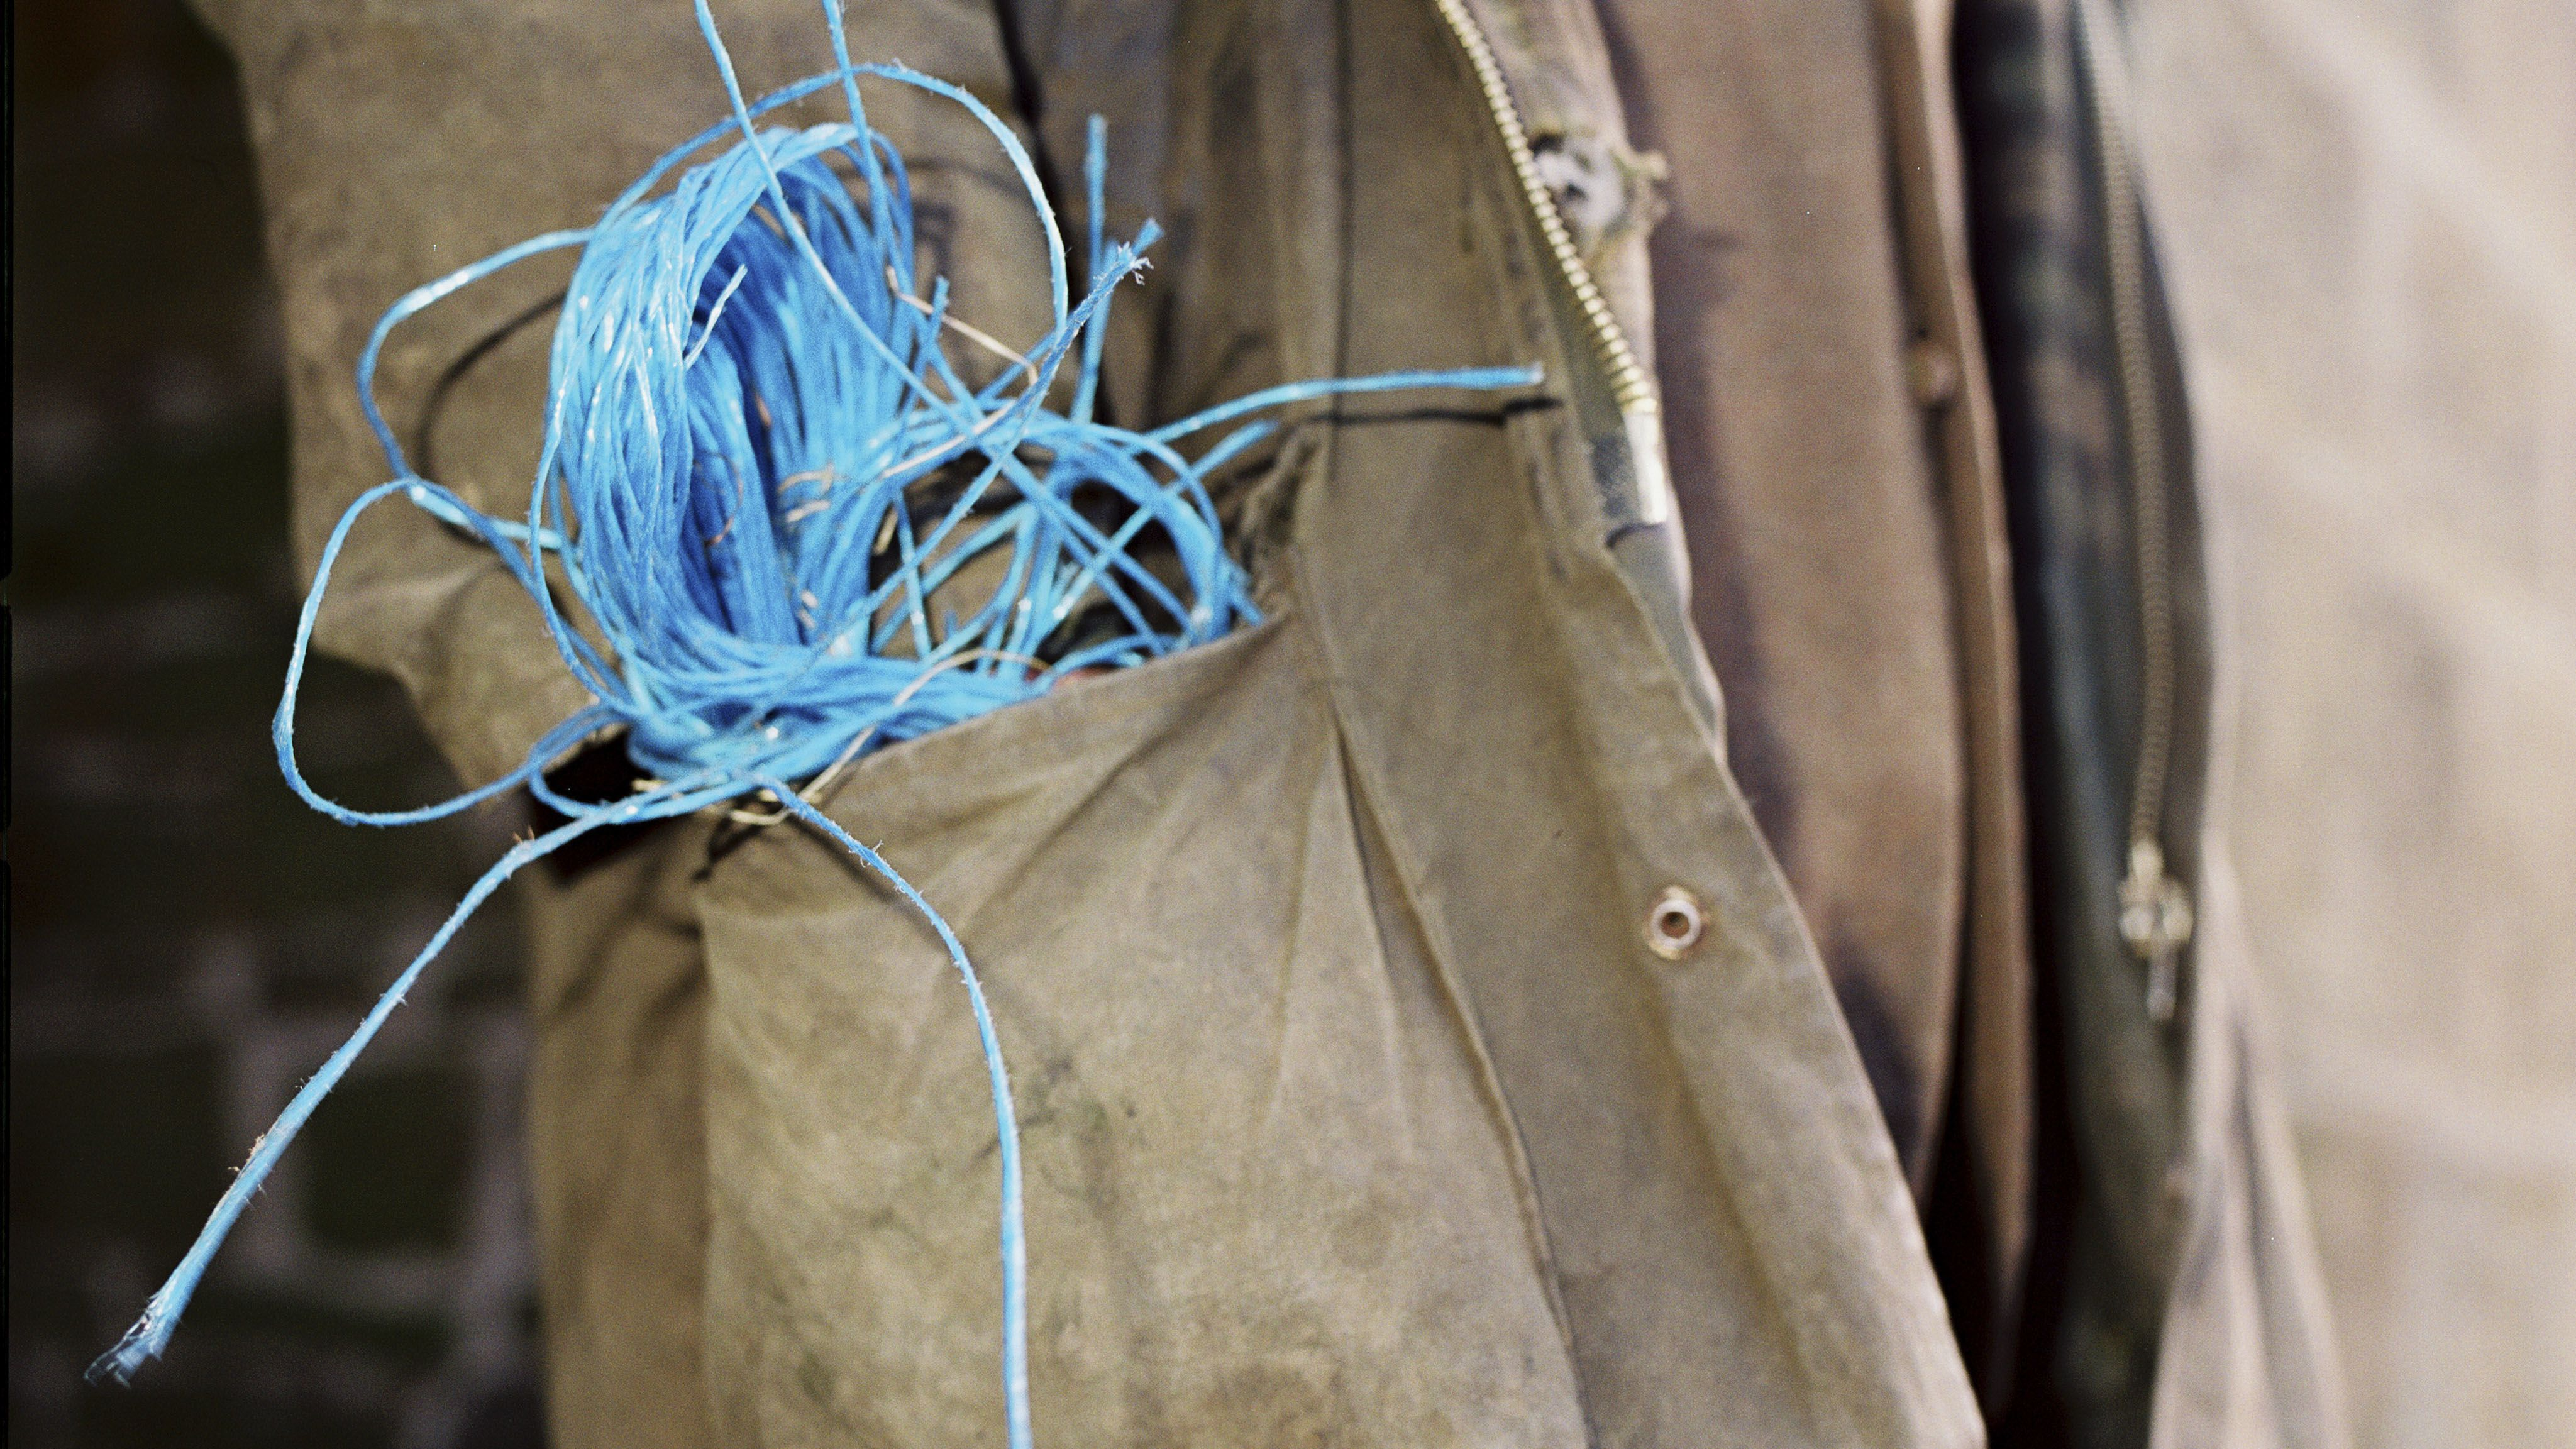 Things to Do with Baler or Binder Twine on lawn mower wire harness, trailer wire harness, chopper wire harness, tractor wire harness,